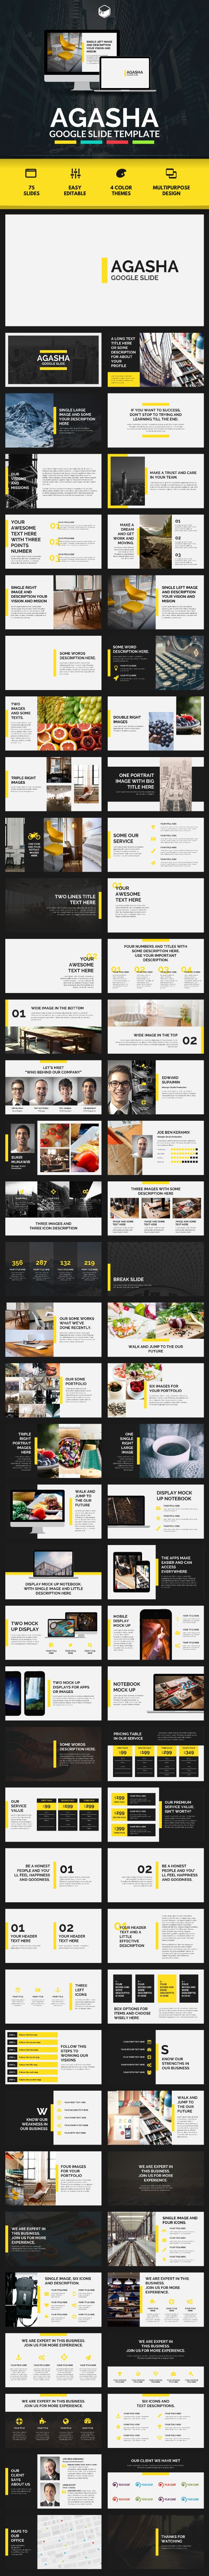 45 best presentation templates images on pinterest keynote agasha google slide template pronofoot35fo Image collections